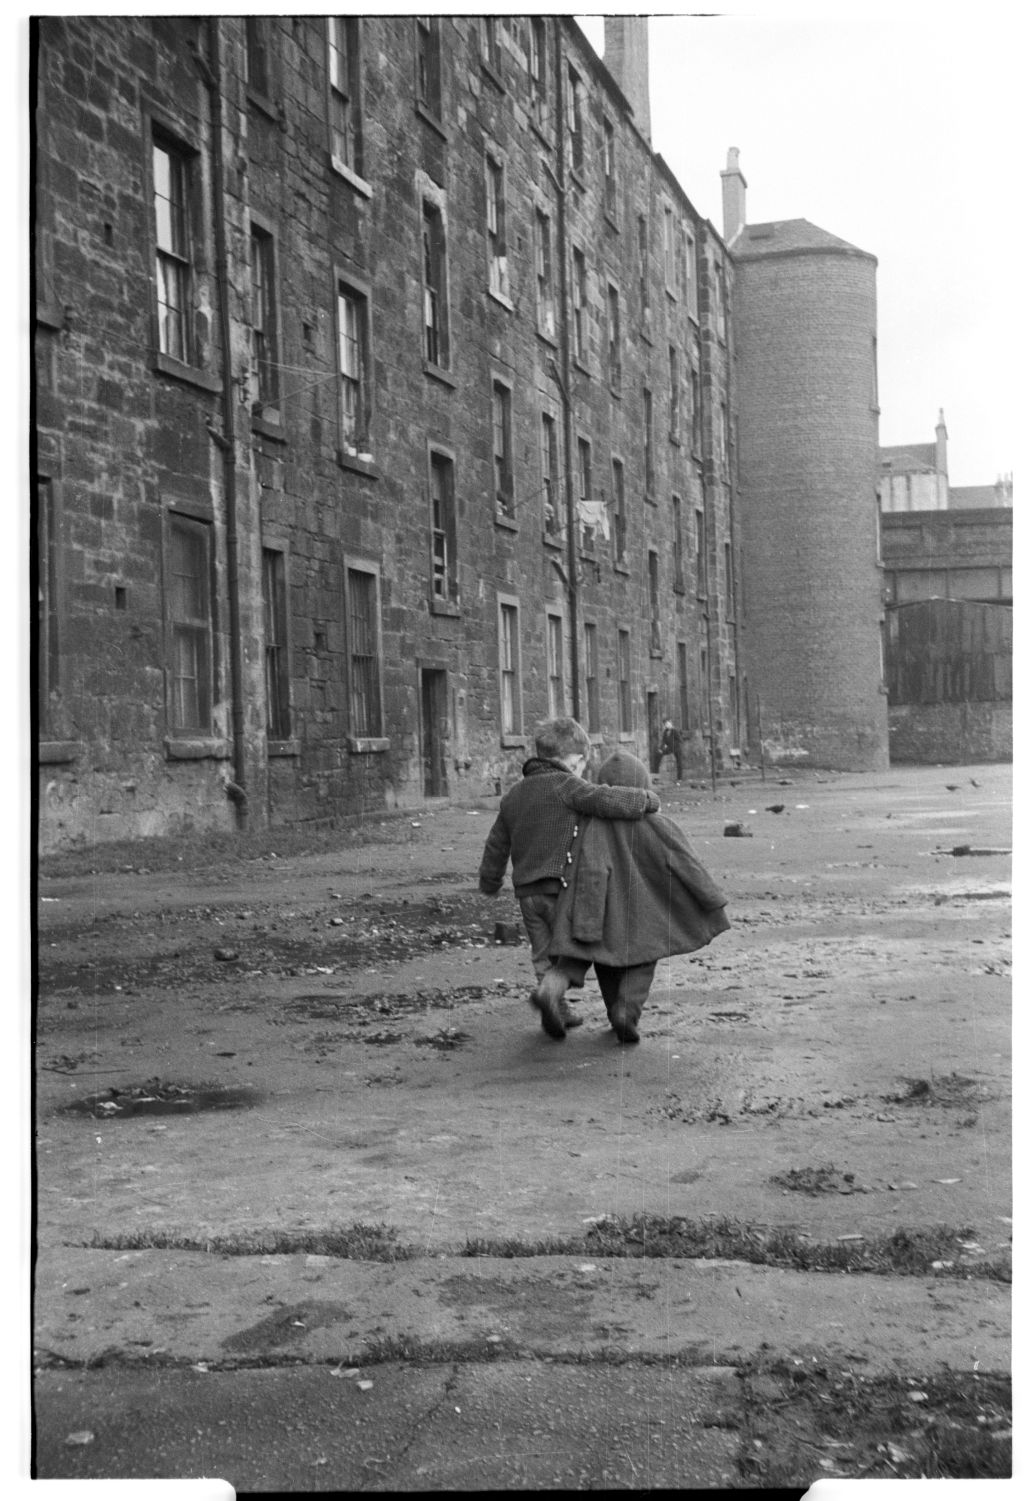 Comforting arm, Gorbals